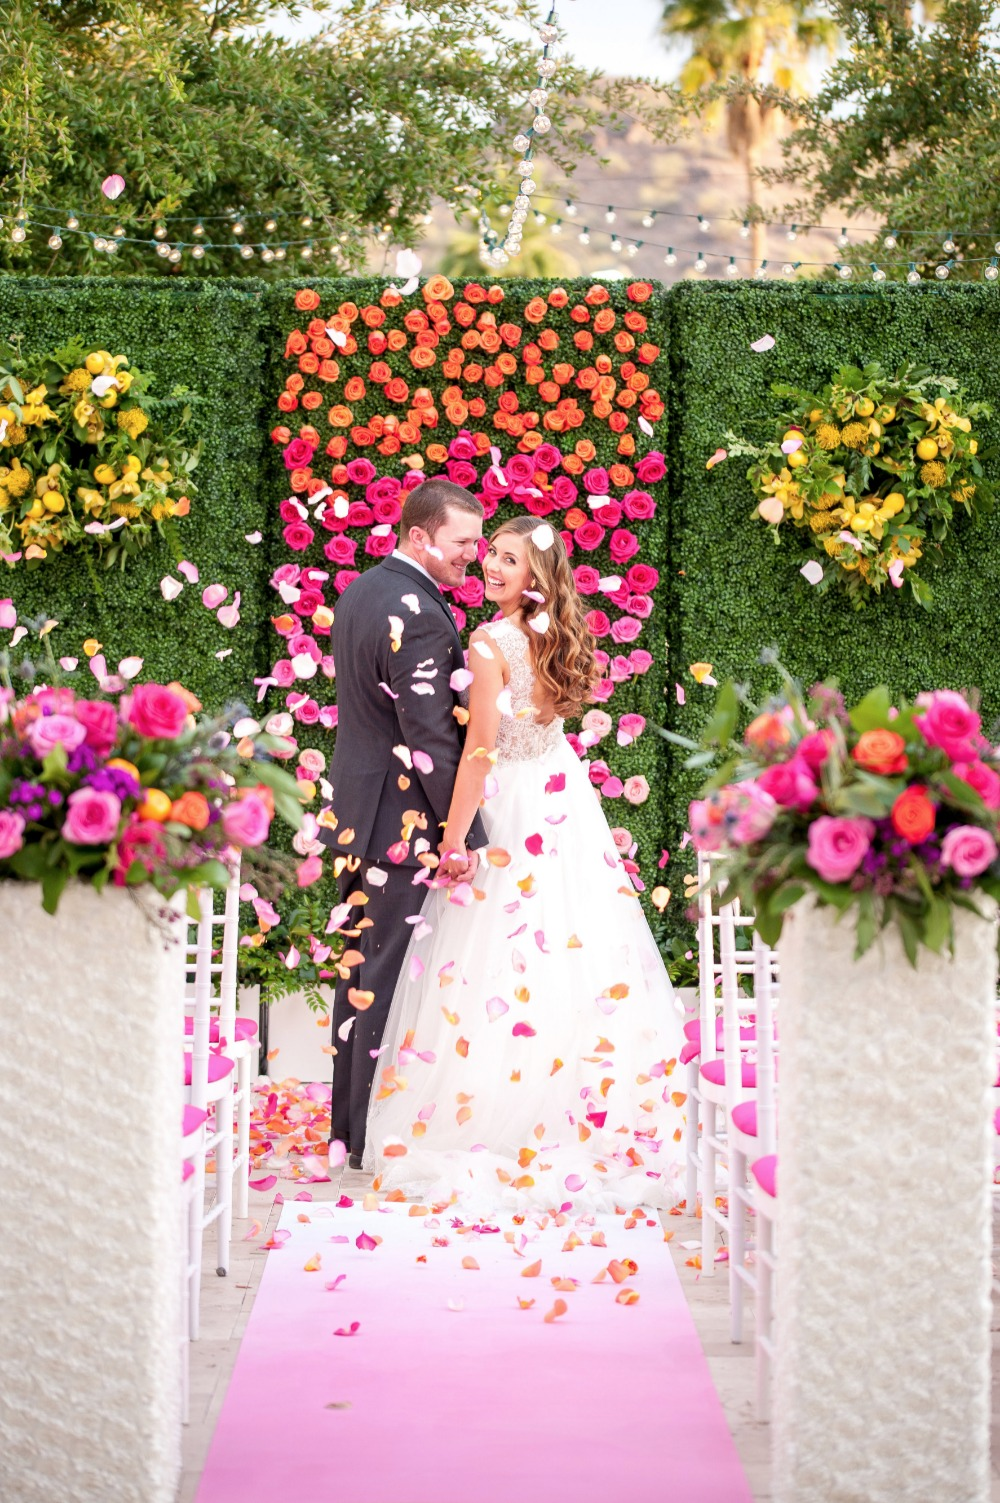 Rose petal toss ceremony